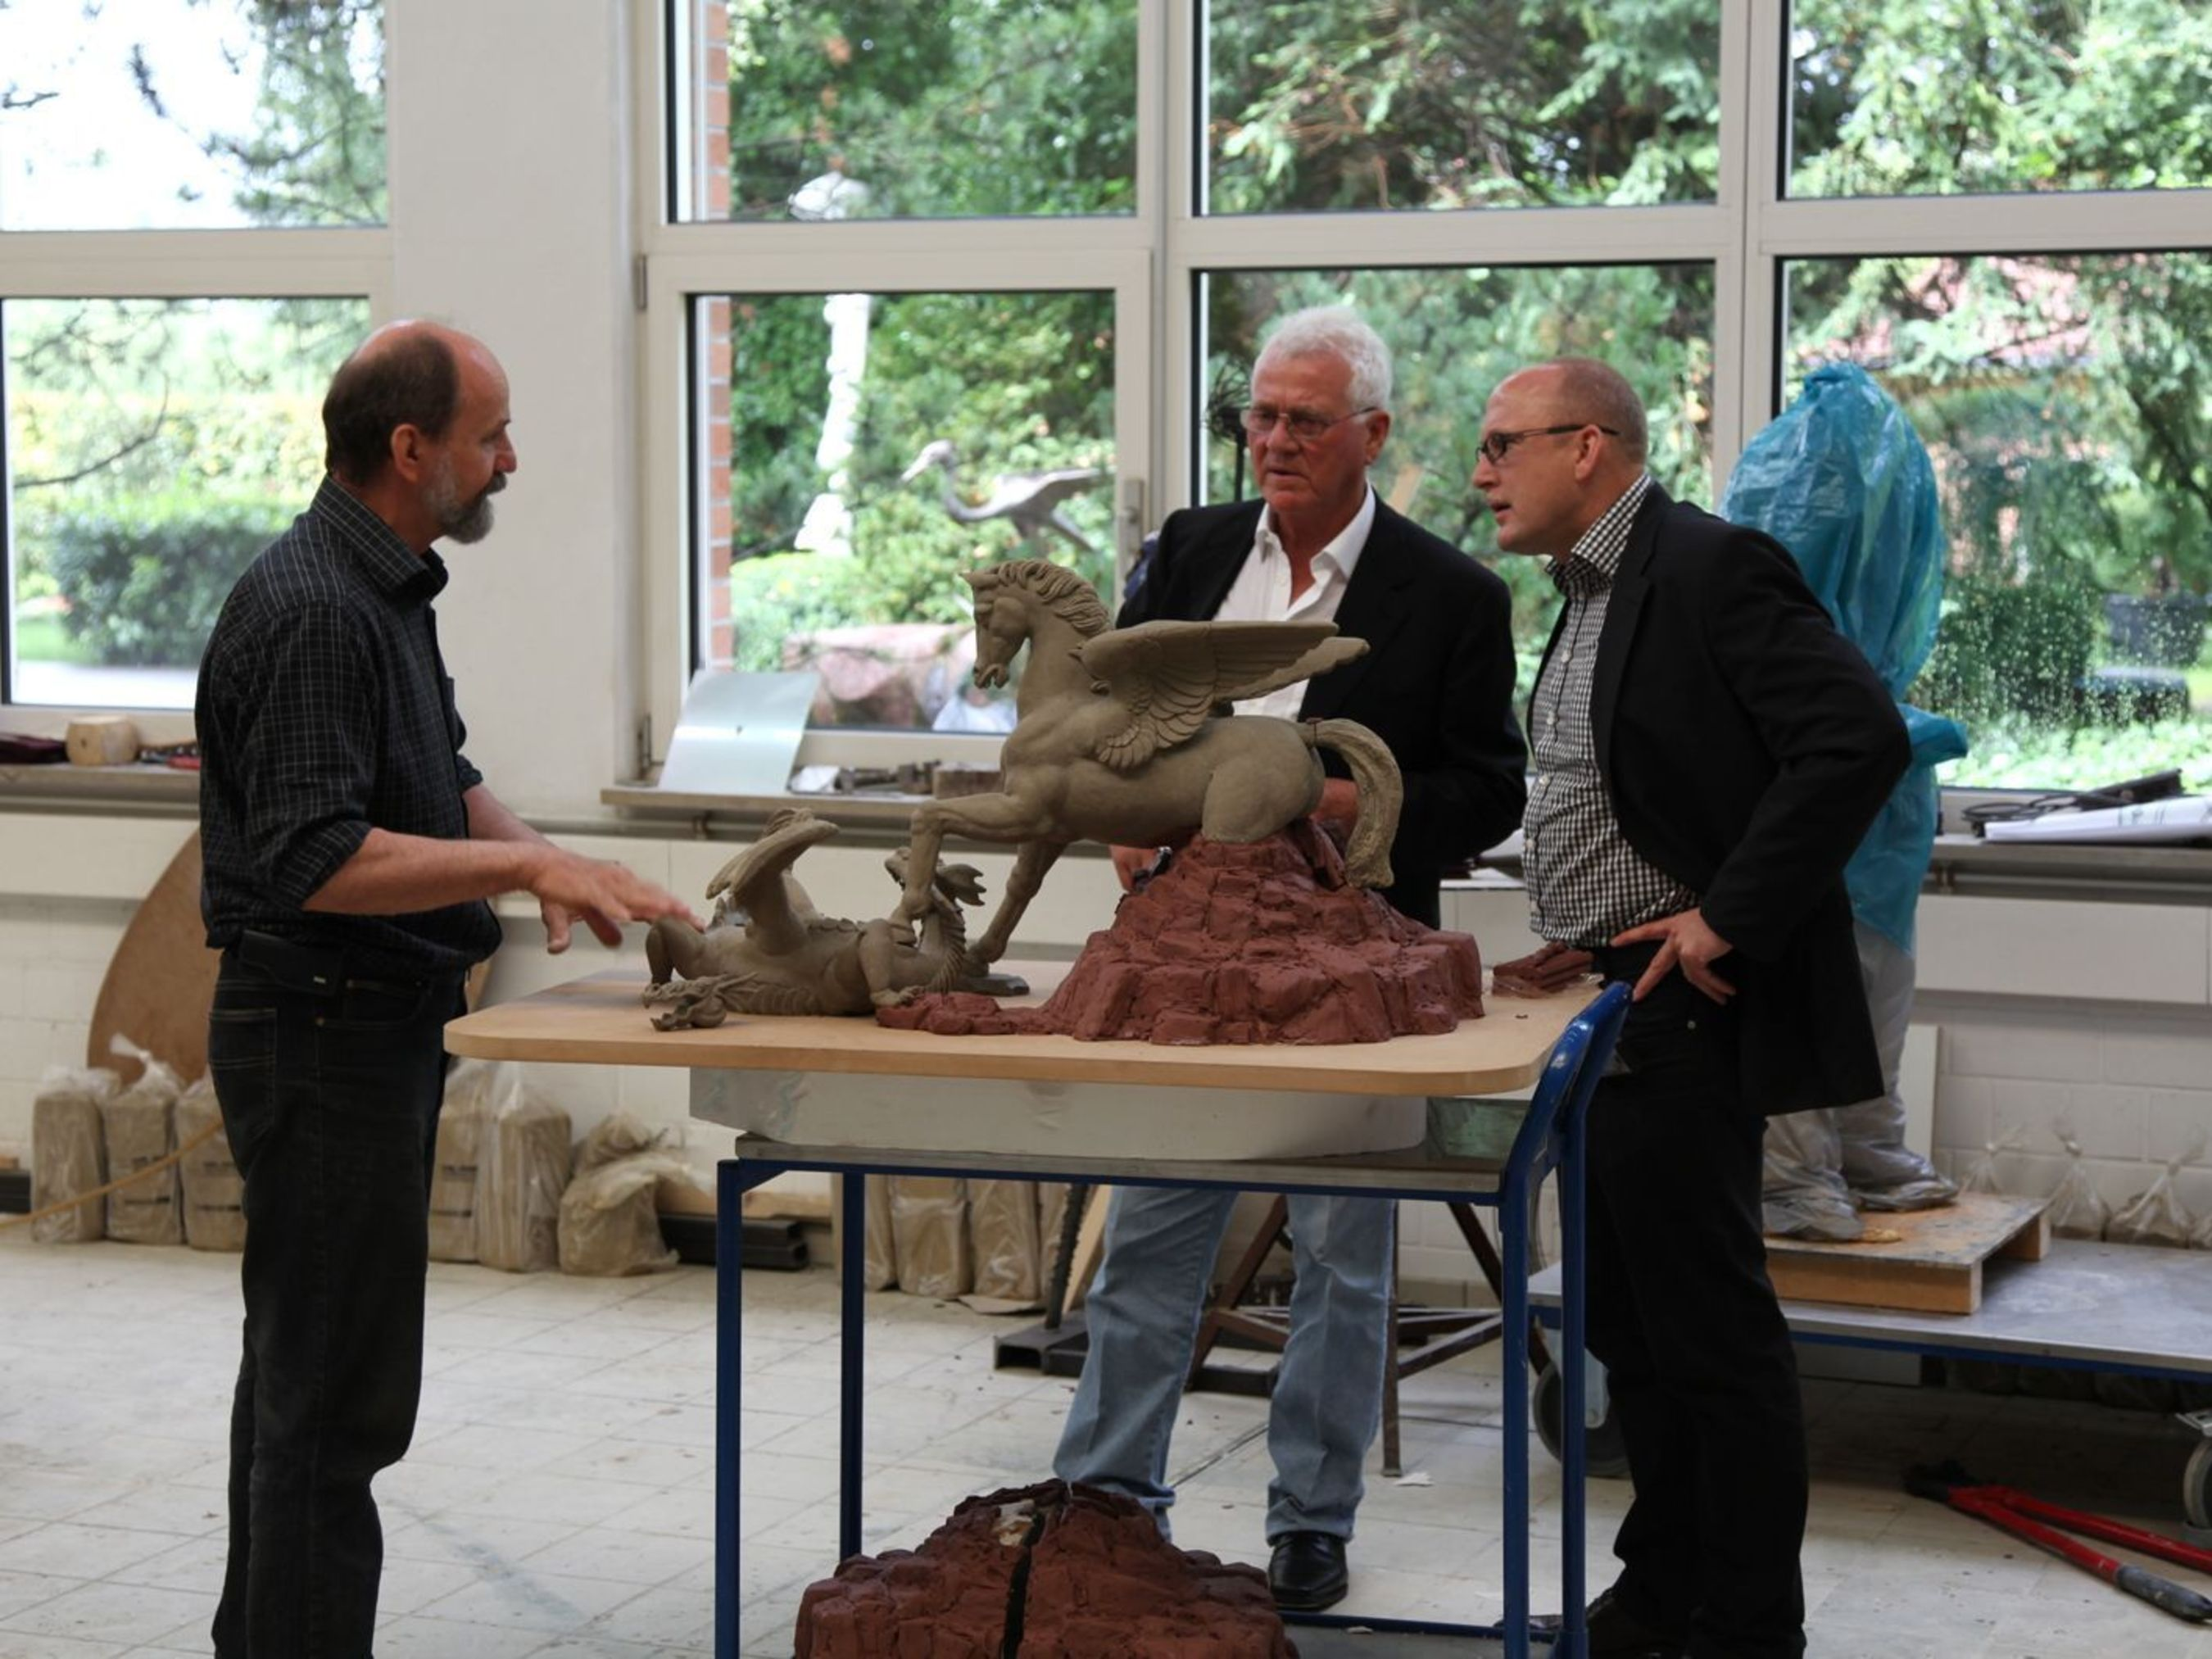 Complete Sculpture of Pegasus and Dragon / Frank Stronach (middle) with Guenter Czasny, deputy managing director from Strassacker, in a conversation with the academic sculptor Waldemar Schroeder (left) at Strassacker workshops. (PRNewsFoto/The Strassacker art foundry)